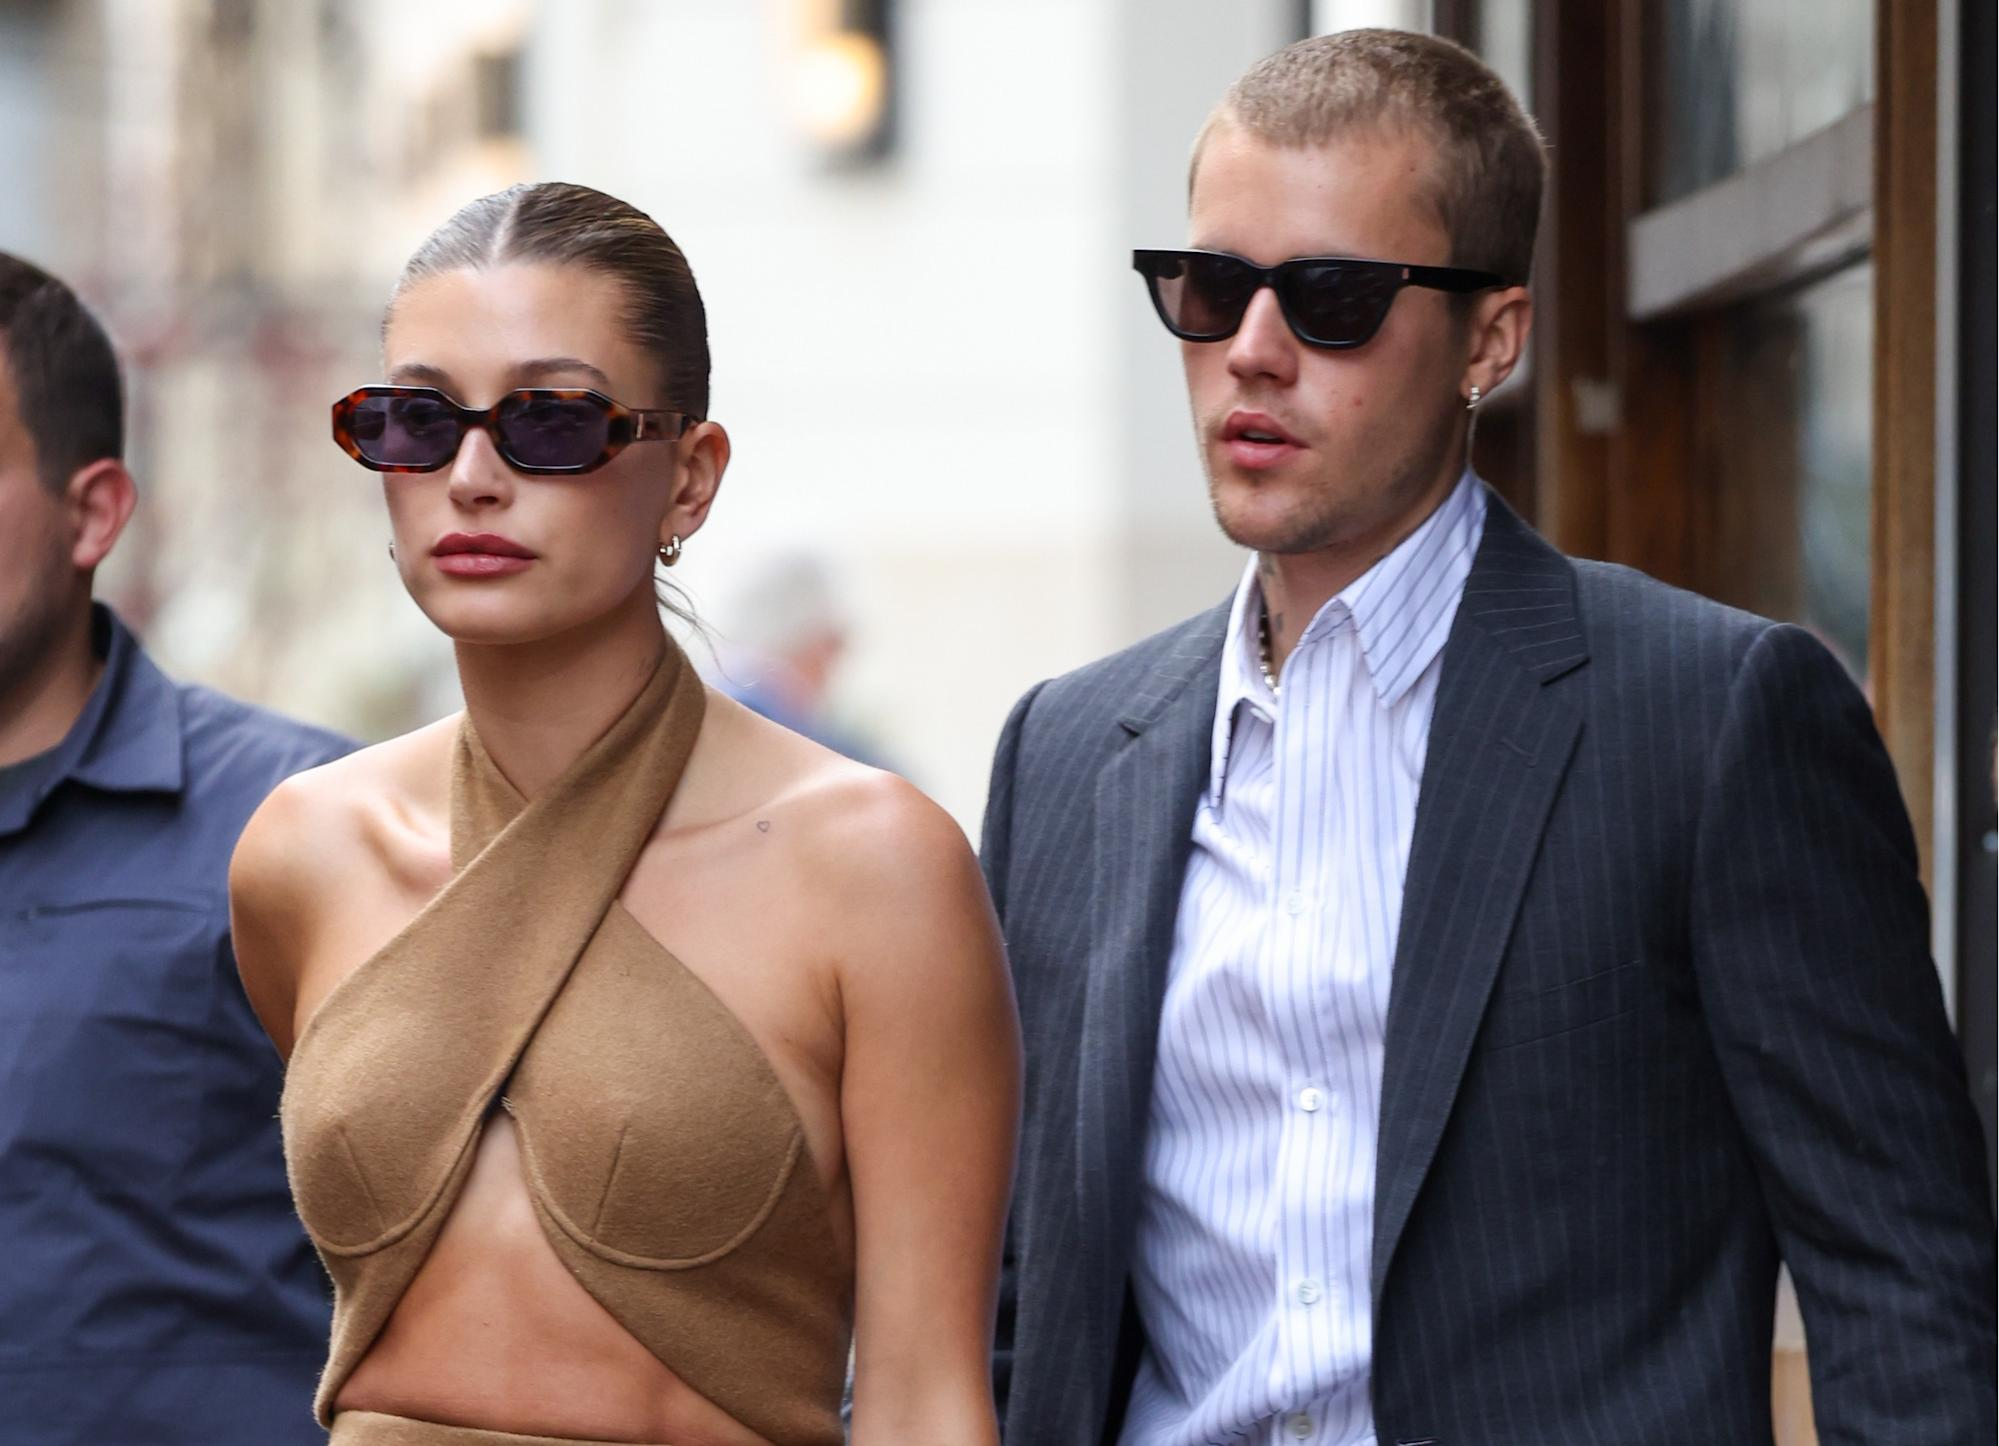 'Show some respect': Fans criticize Hailey and Justin Bieber for dressing 'inappropriately' to meet French president